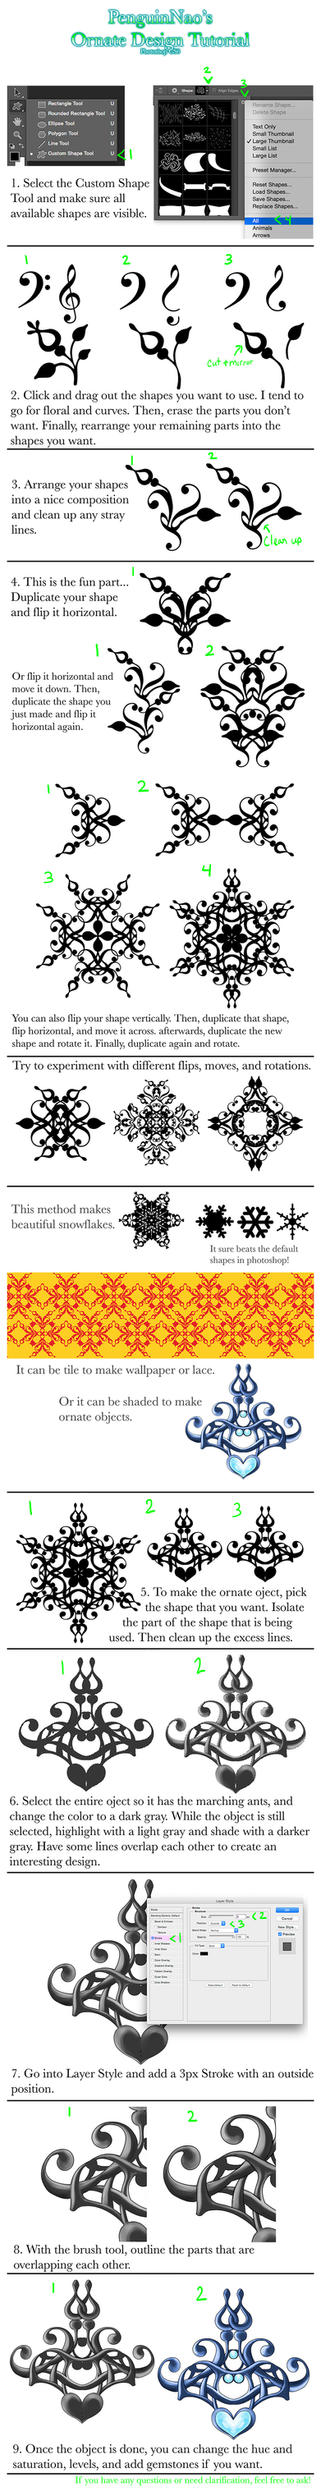 Ornate Design Tutorial by Savinee